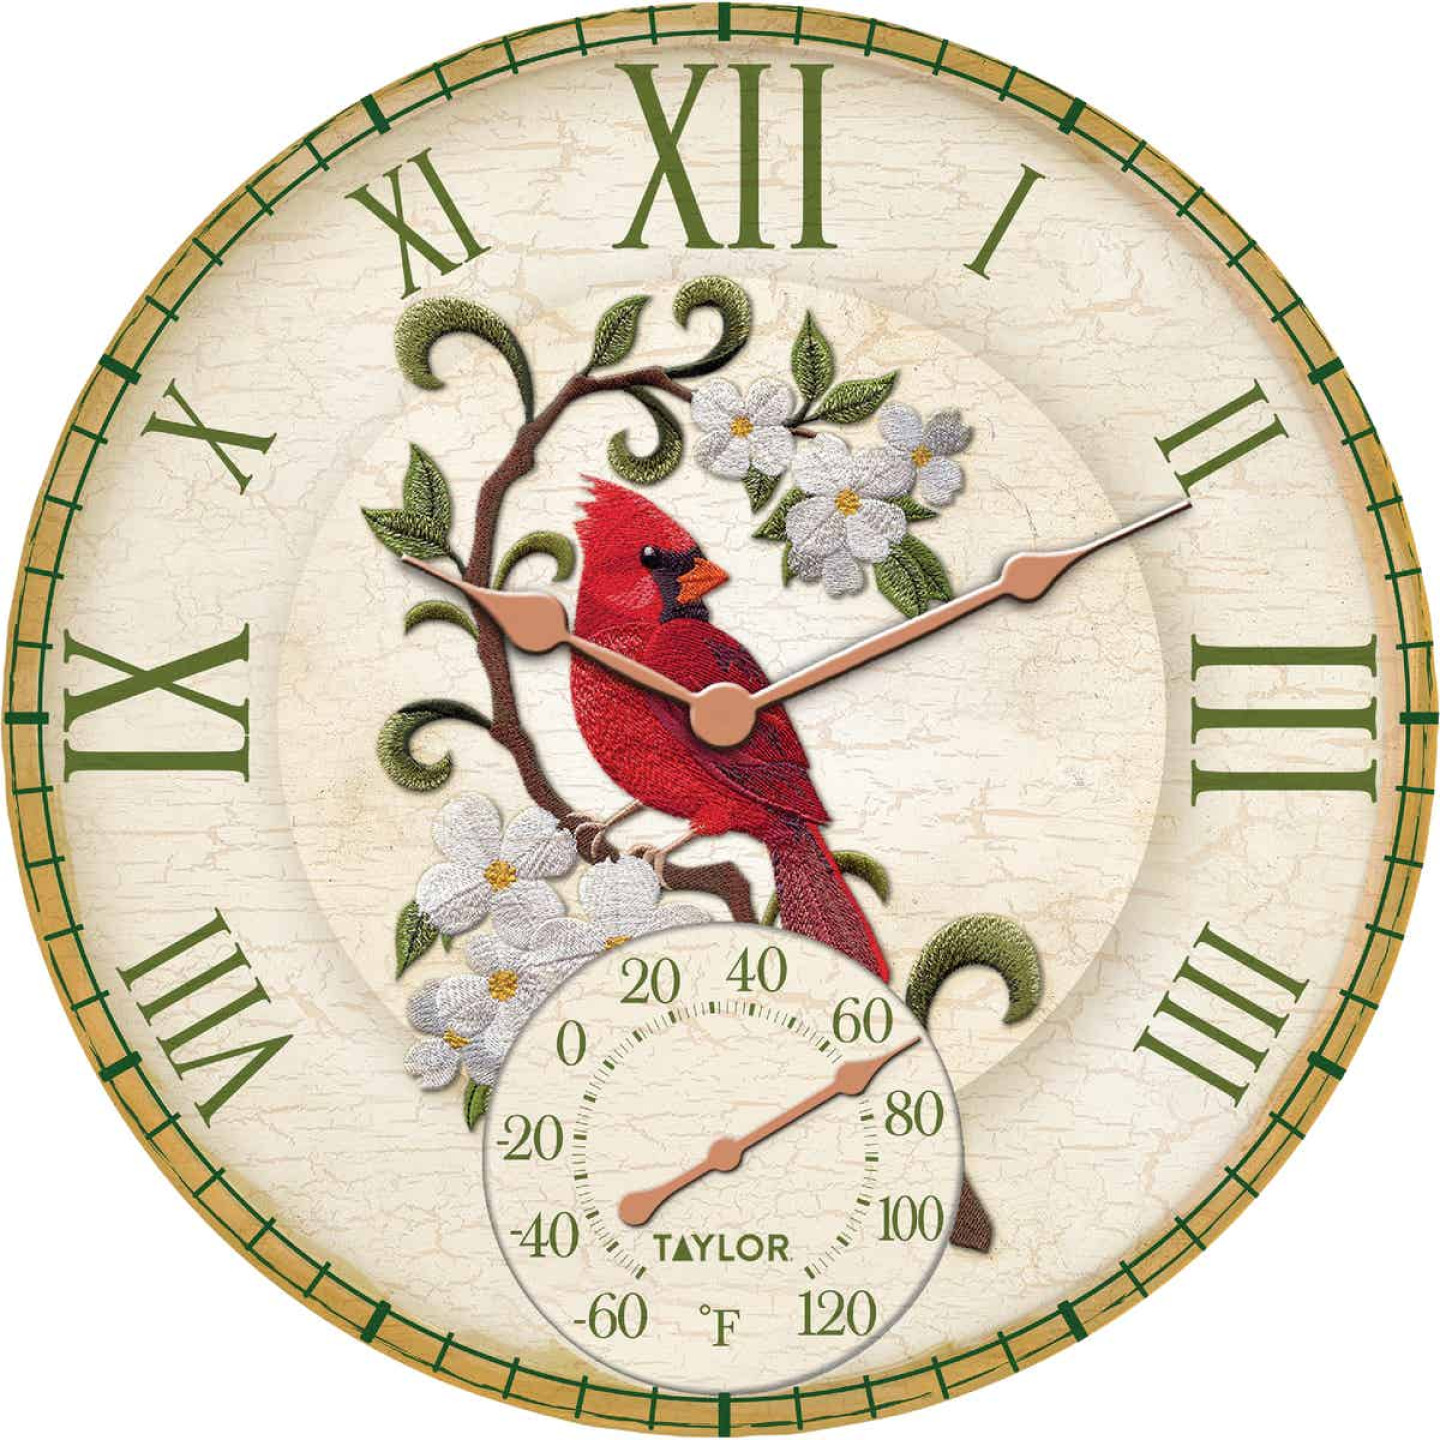 Taylor SpringField 14 In. Resin Indoor/Outdoor Cardinal Clock Thermometer Image 1